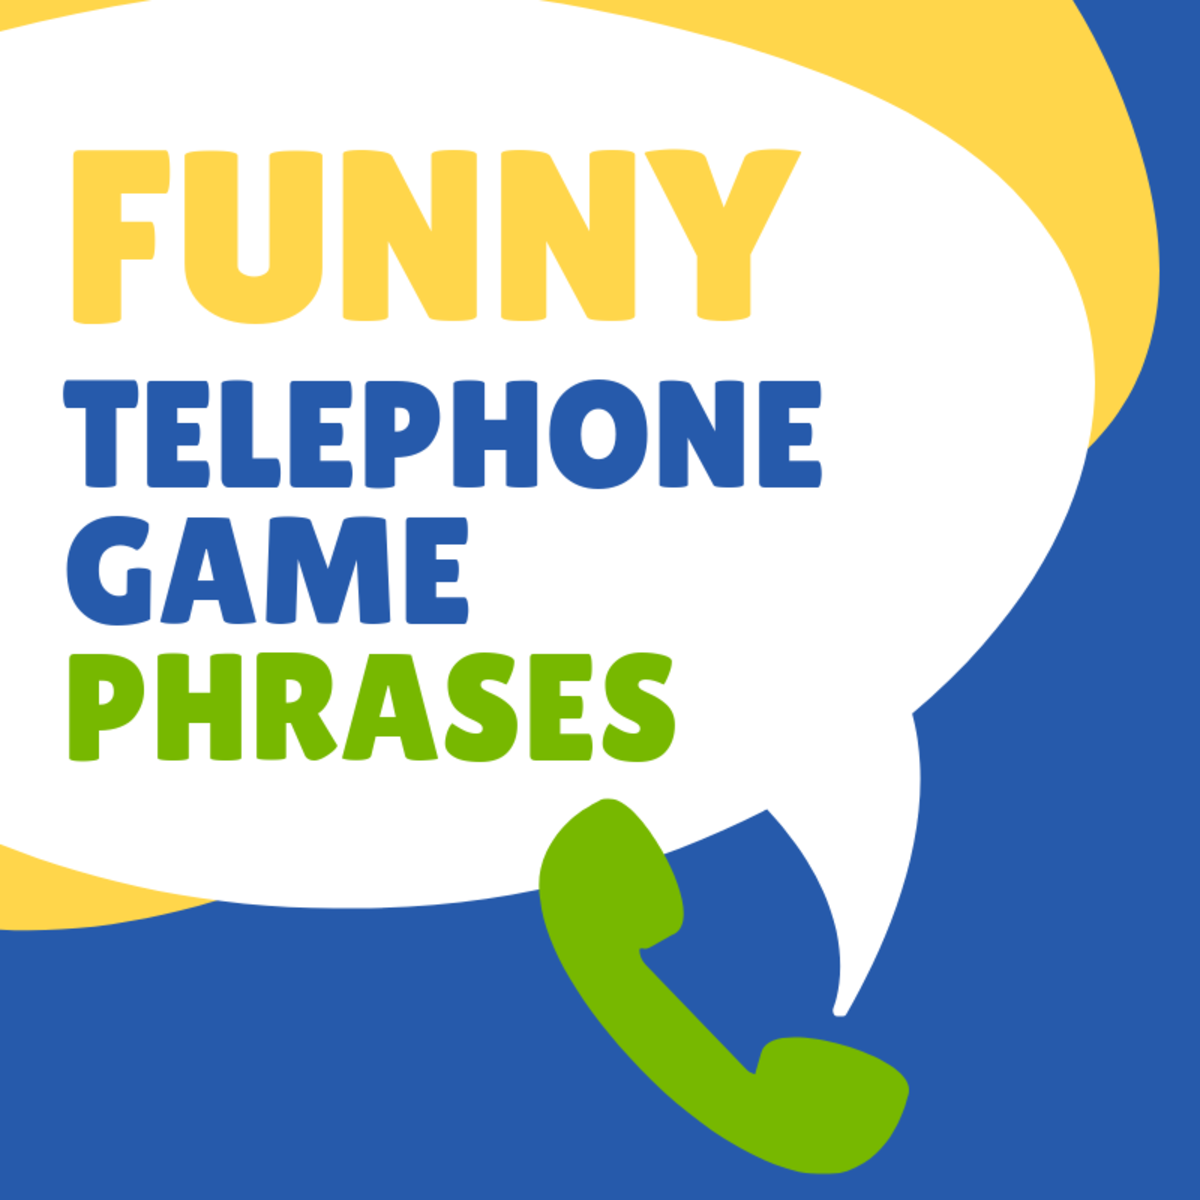 45 Funny Telephone Game Phrases | HobbyLark